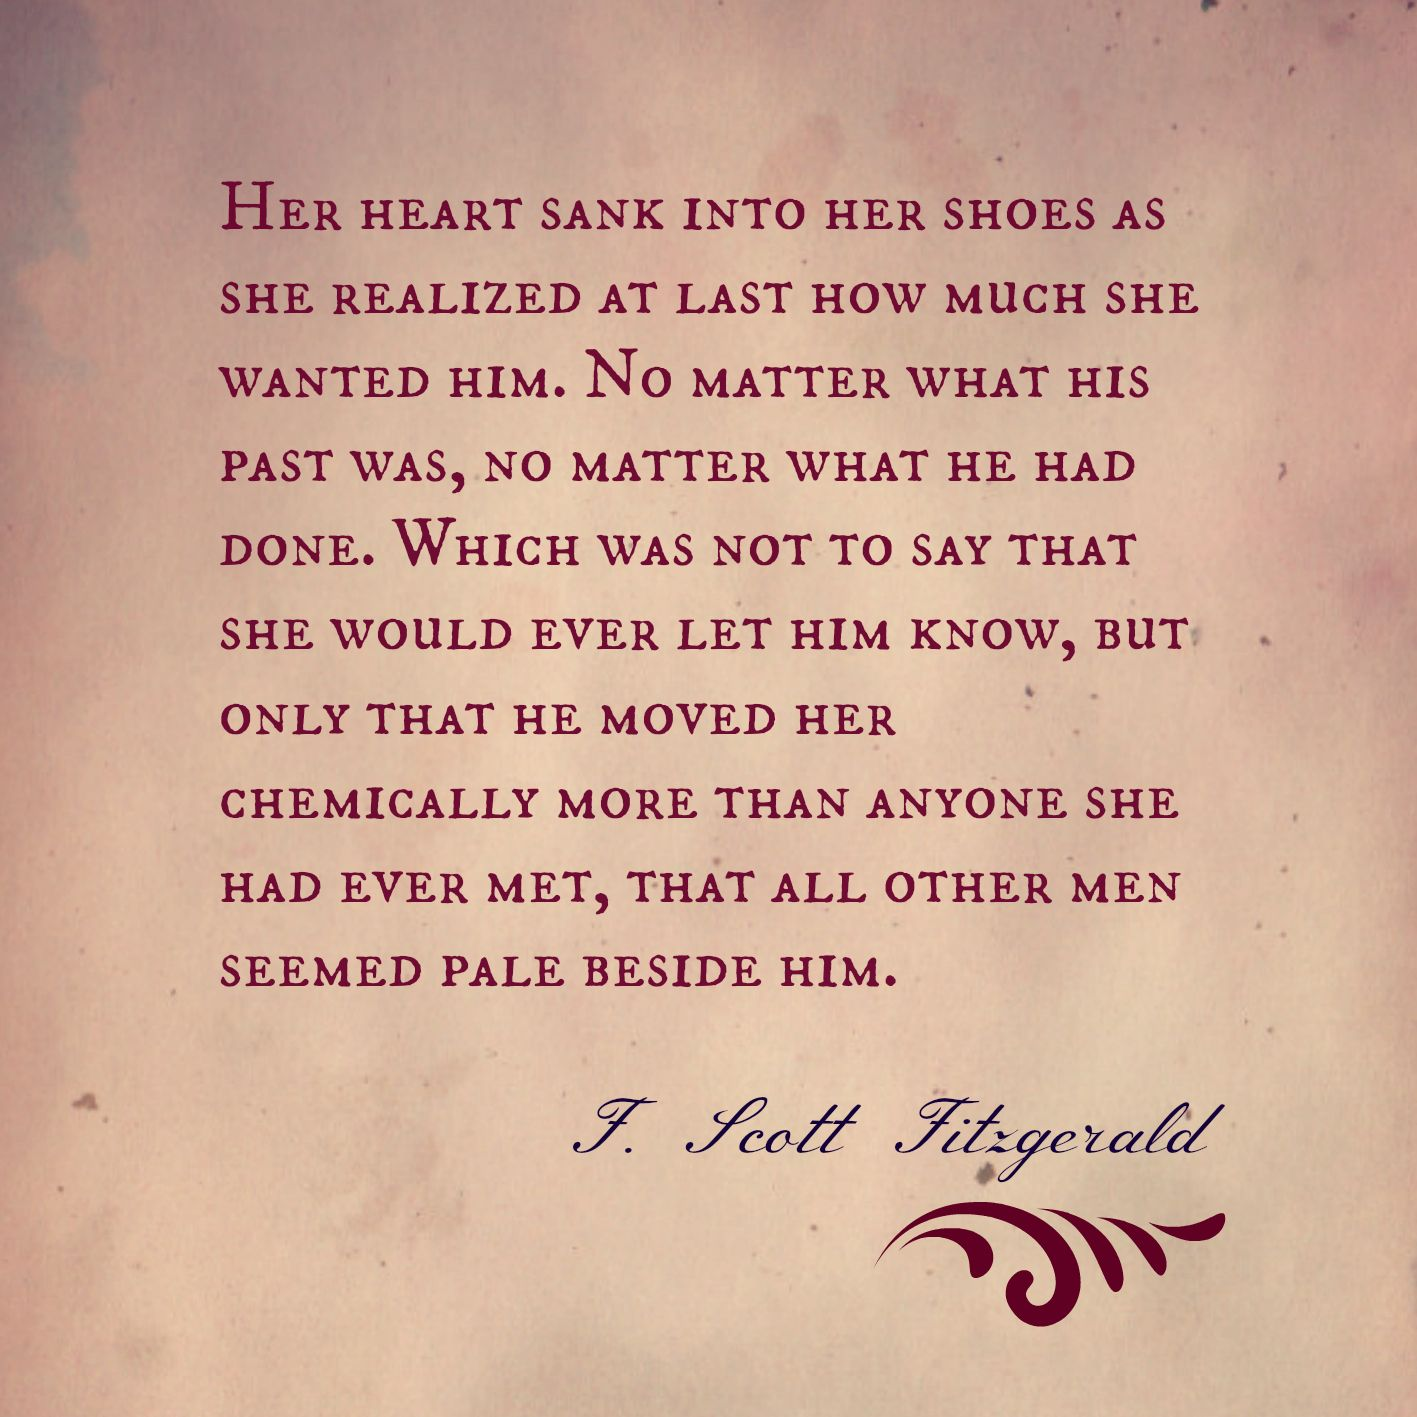 F Scott Fitzgerald Love Quote Fscott Fitzgerald  Quotables  Pinterest  Scott Fitzgerald